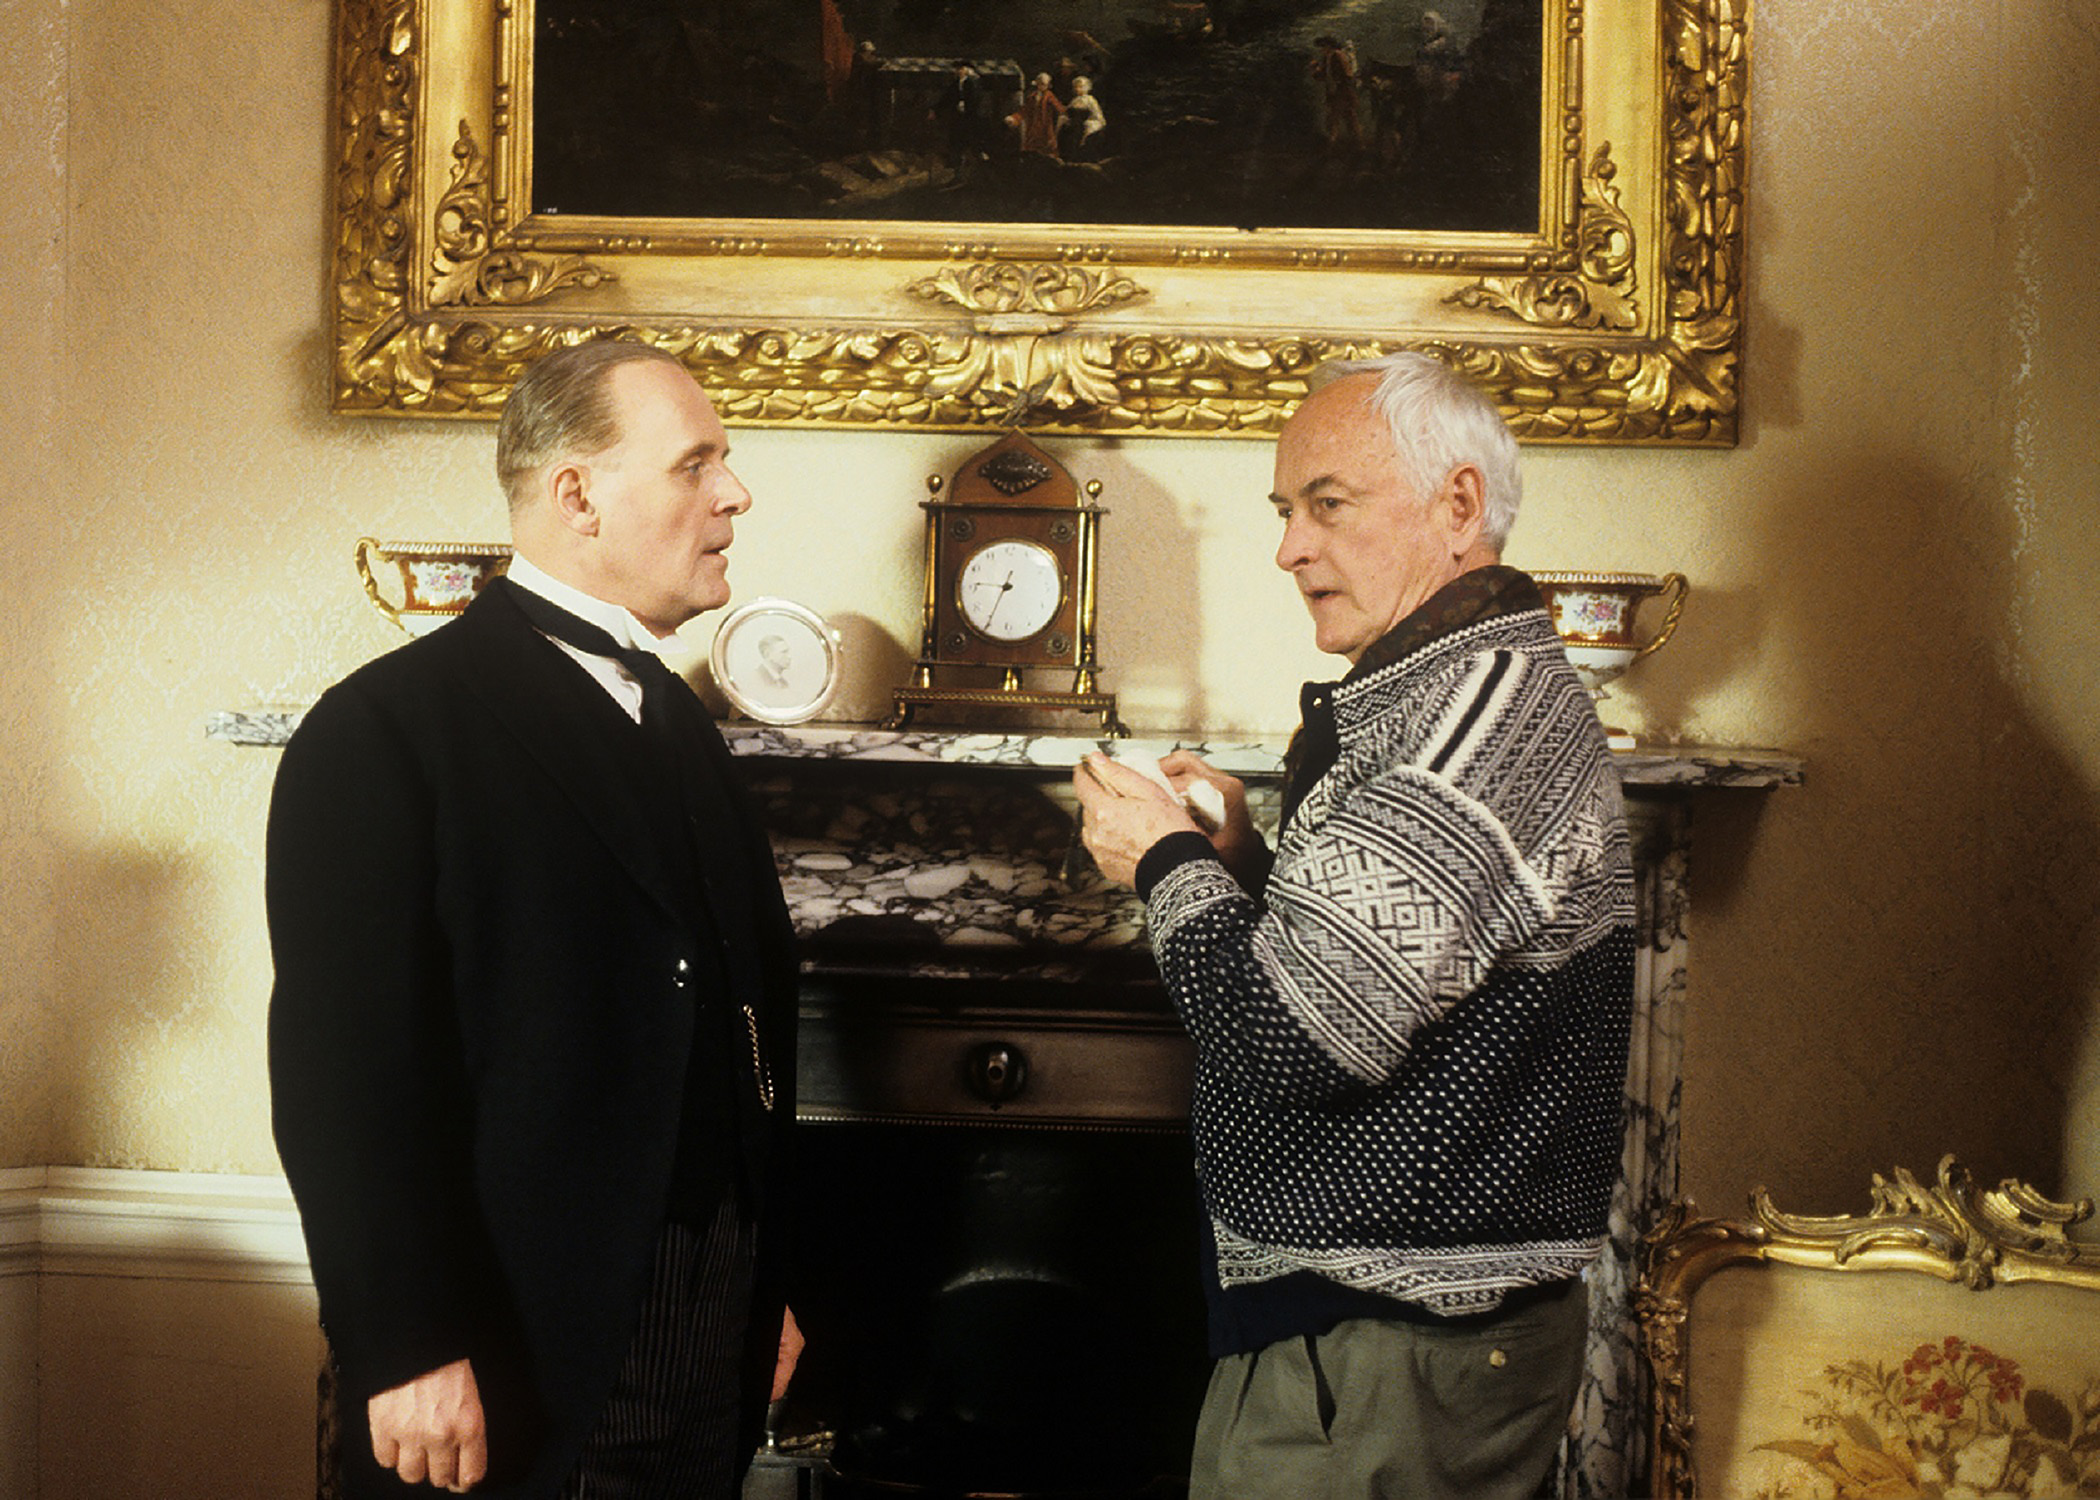 James Ivory with Anthony Hopkins filming 1993's The Remains of the Day. Credit: Derrick Santini